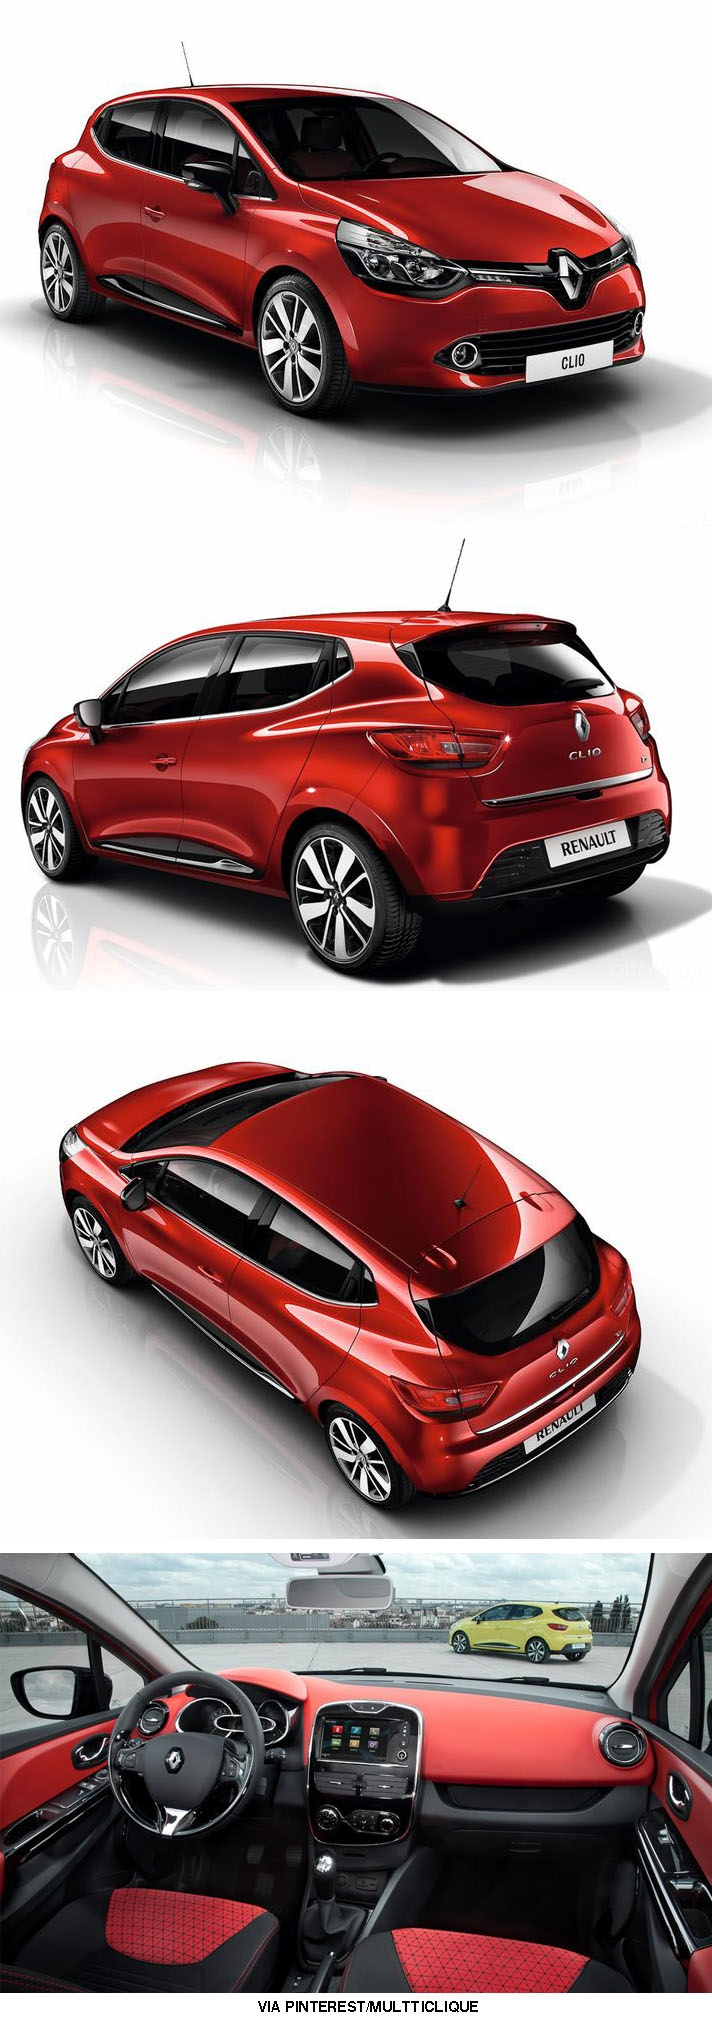 All photos of the renault rodeo 6 on this page are represented for - Renault Clio